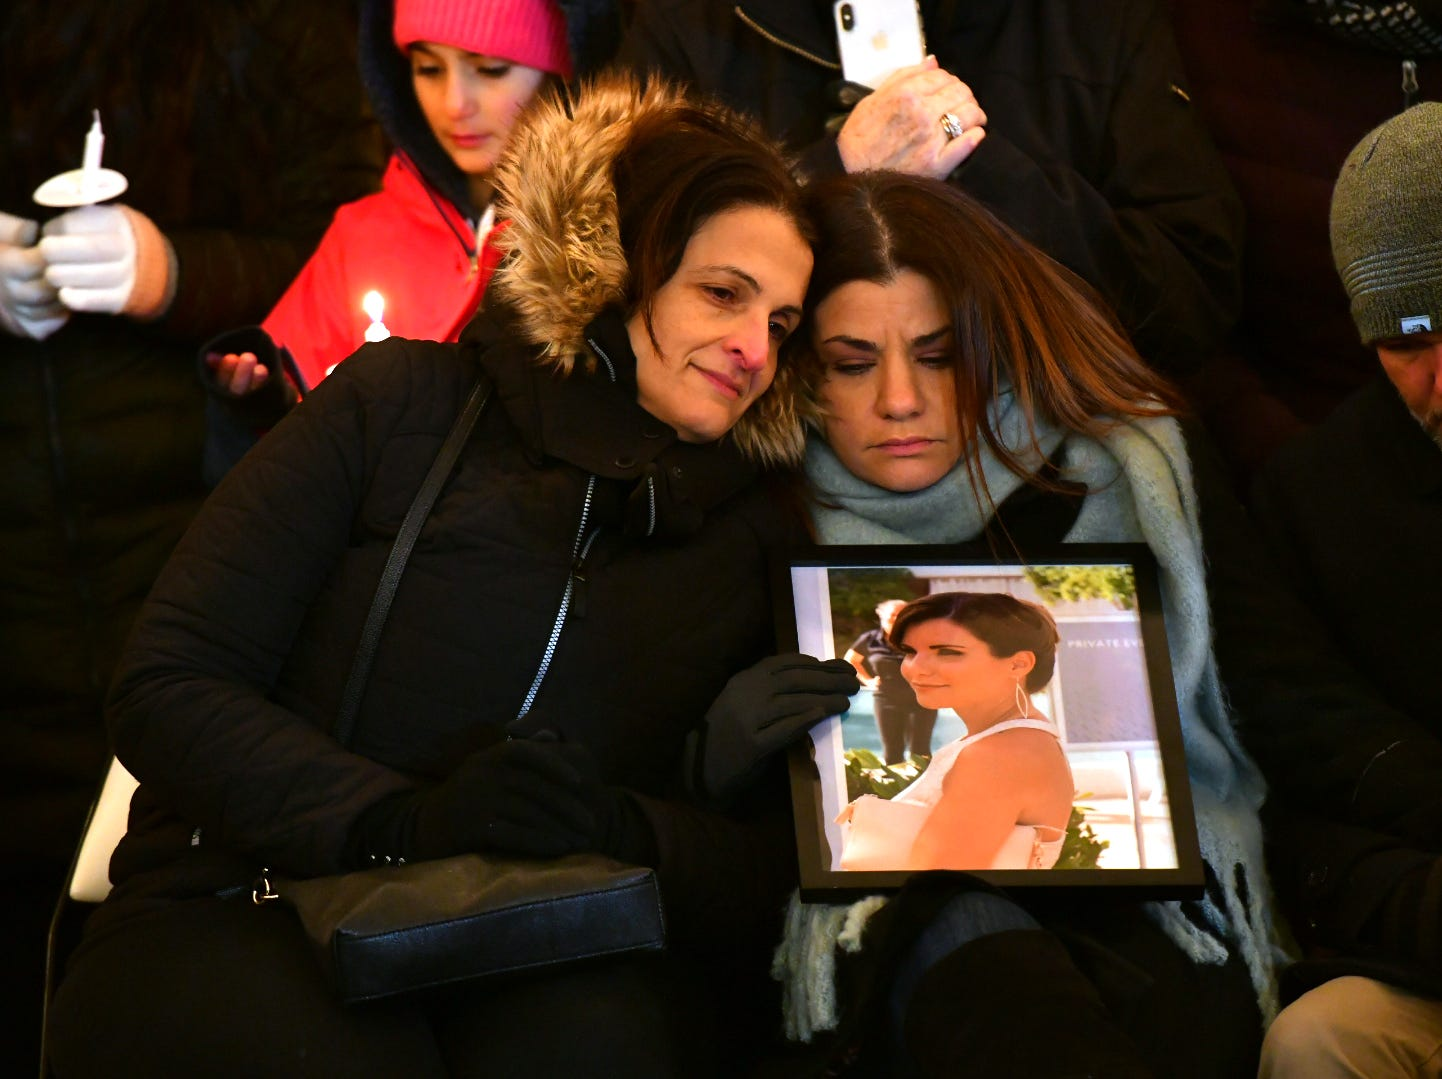 Rana Abbas Taylor (right) holds a picture of her sister Rima Abbas, who died along with her husband and three children in a tragic car accident, during a candlelight vigil in memory of the Northville family.